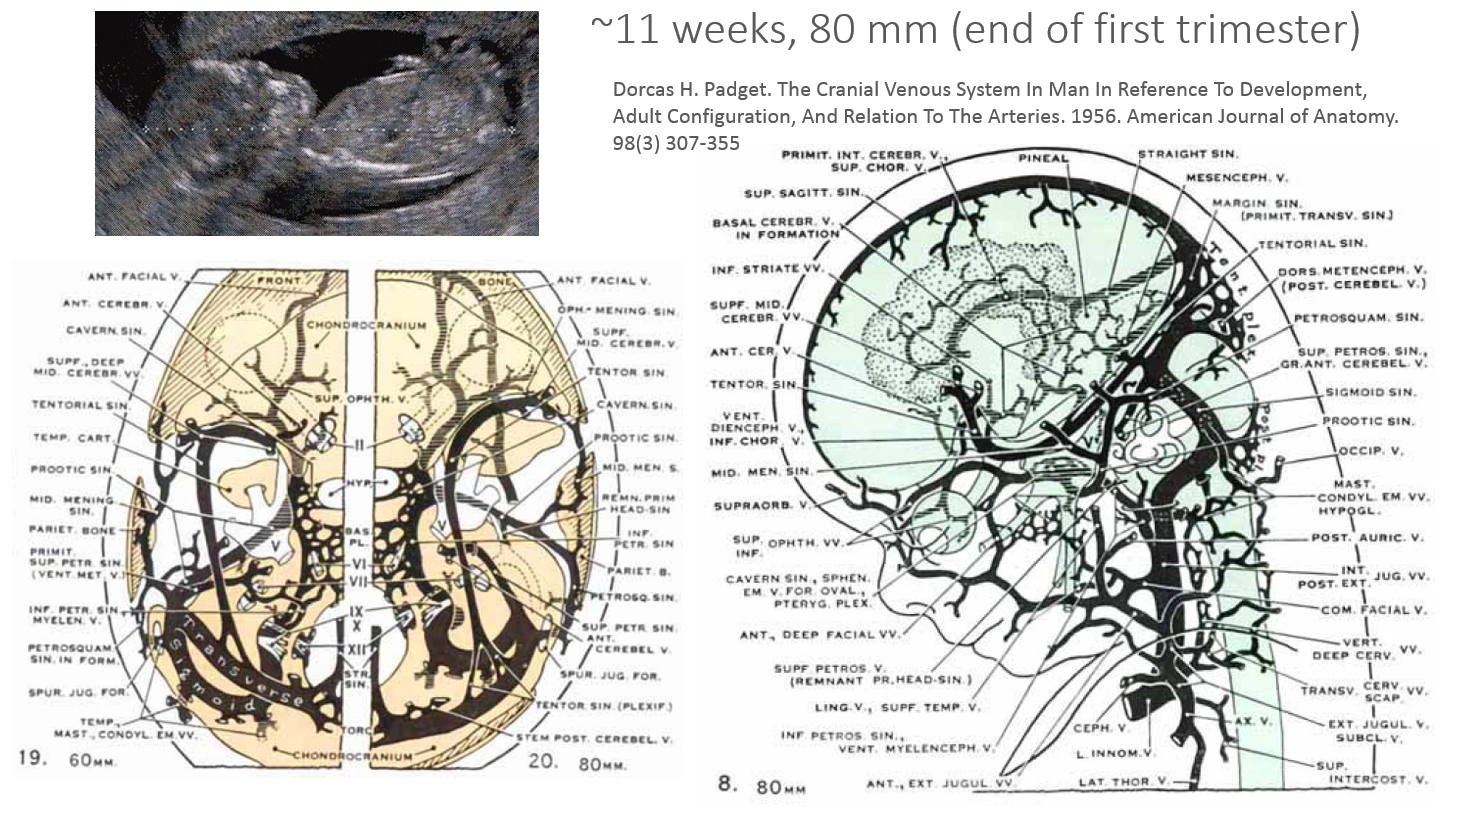 http://www.neuroangio.org/wp-content/uploads/Venous_Embryology/Venous_Embryology_neuroangio_18.PNG